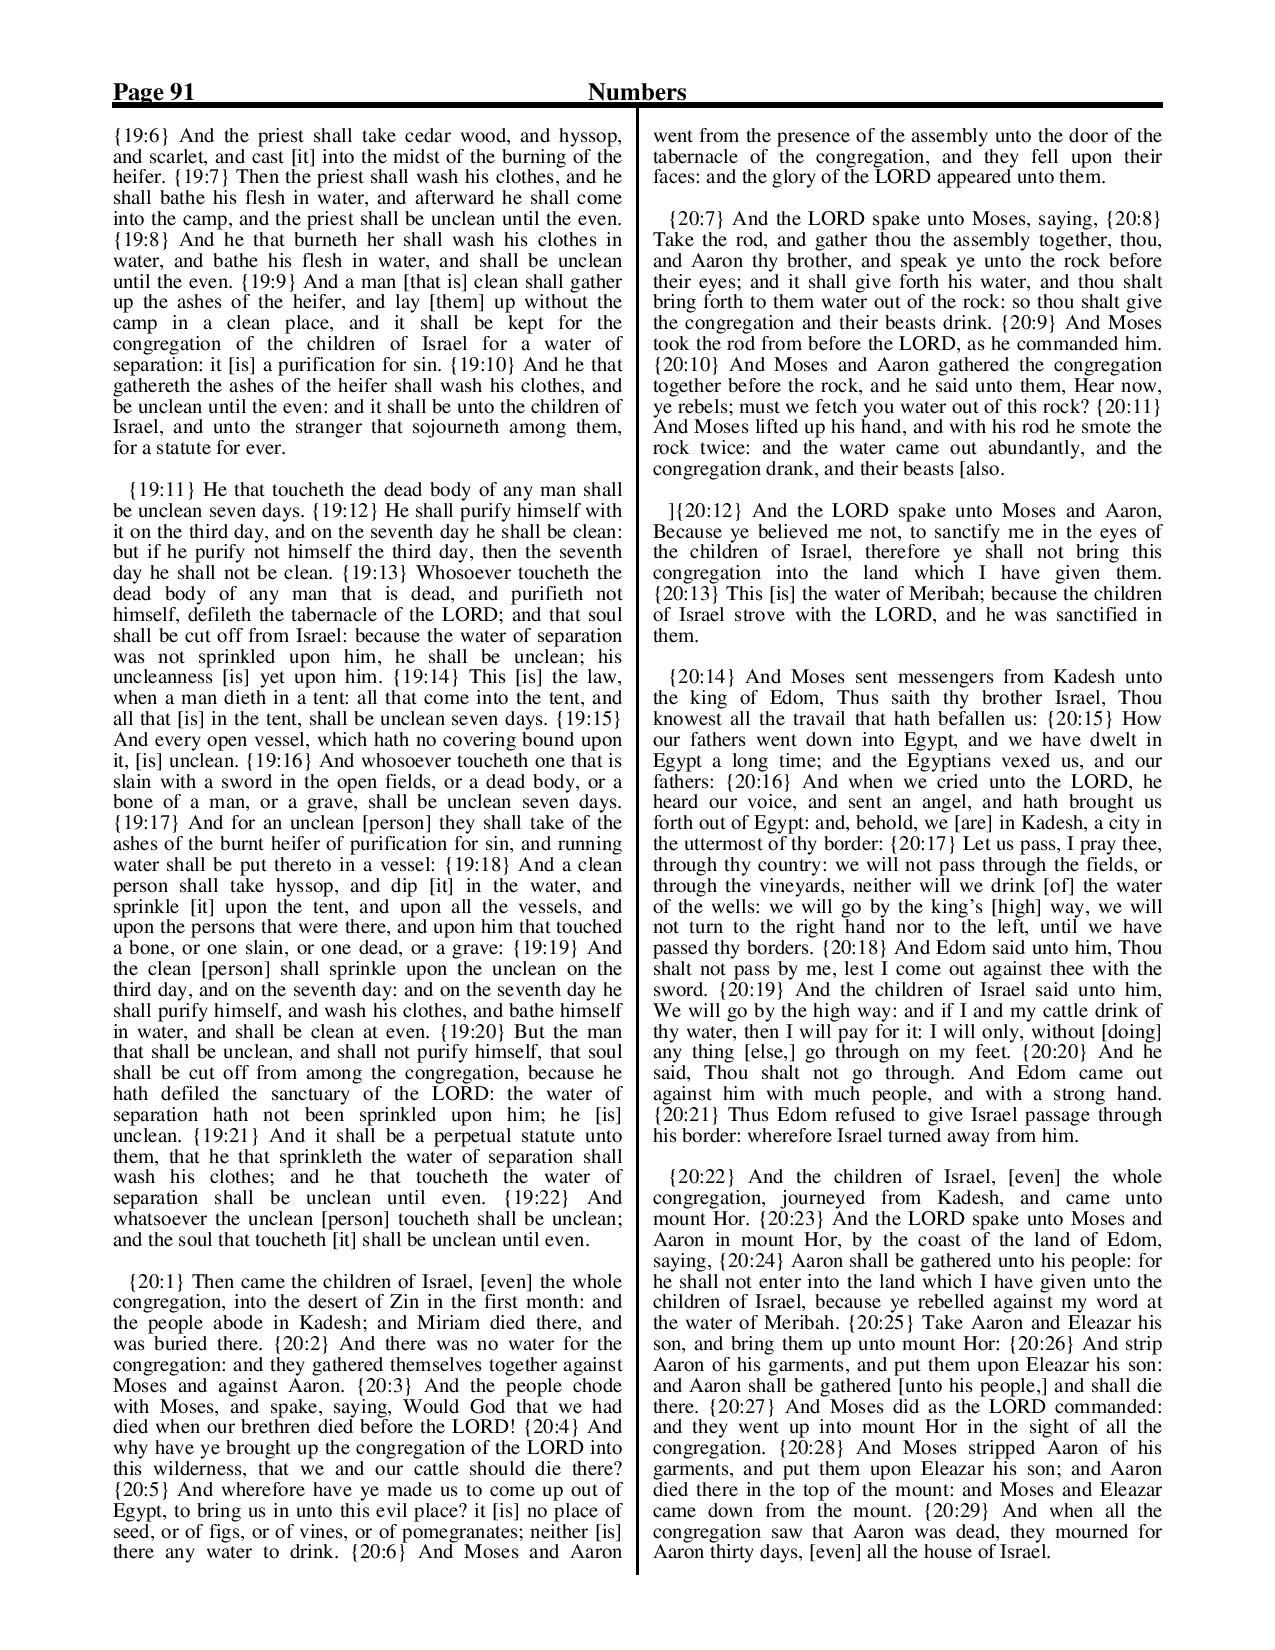 King-James-Bible-KJV-Bible-PDF-page-112